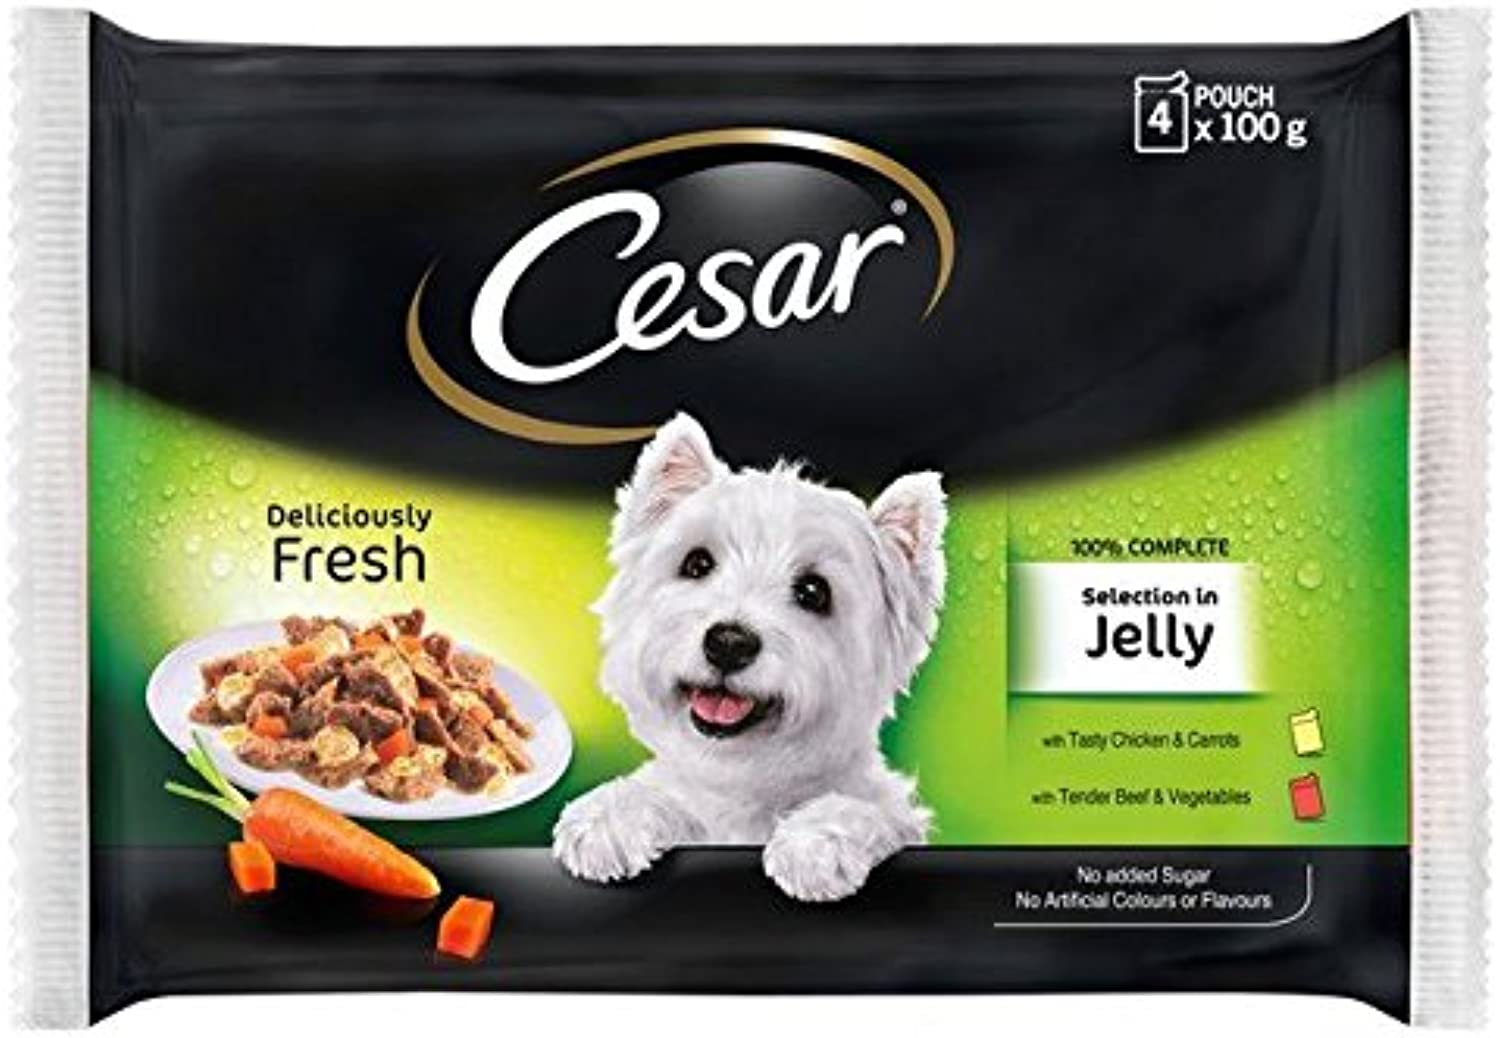 Cesar Fresh Pouch Meat Selection in Jelly 4 x 100g (PACK OF 6)